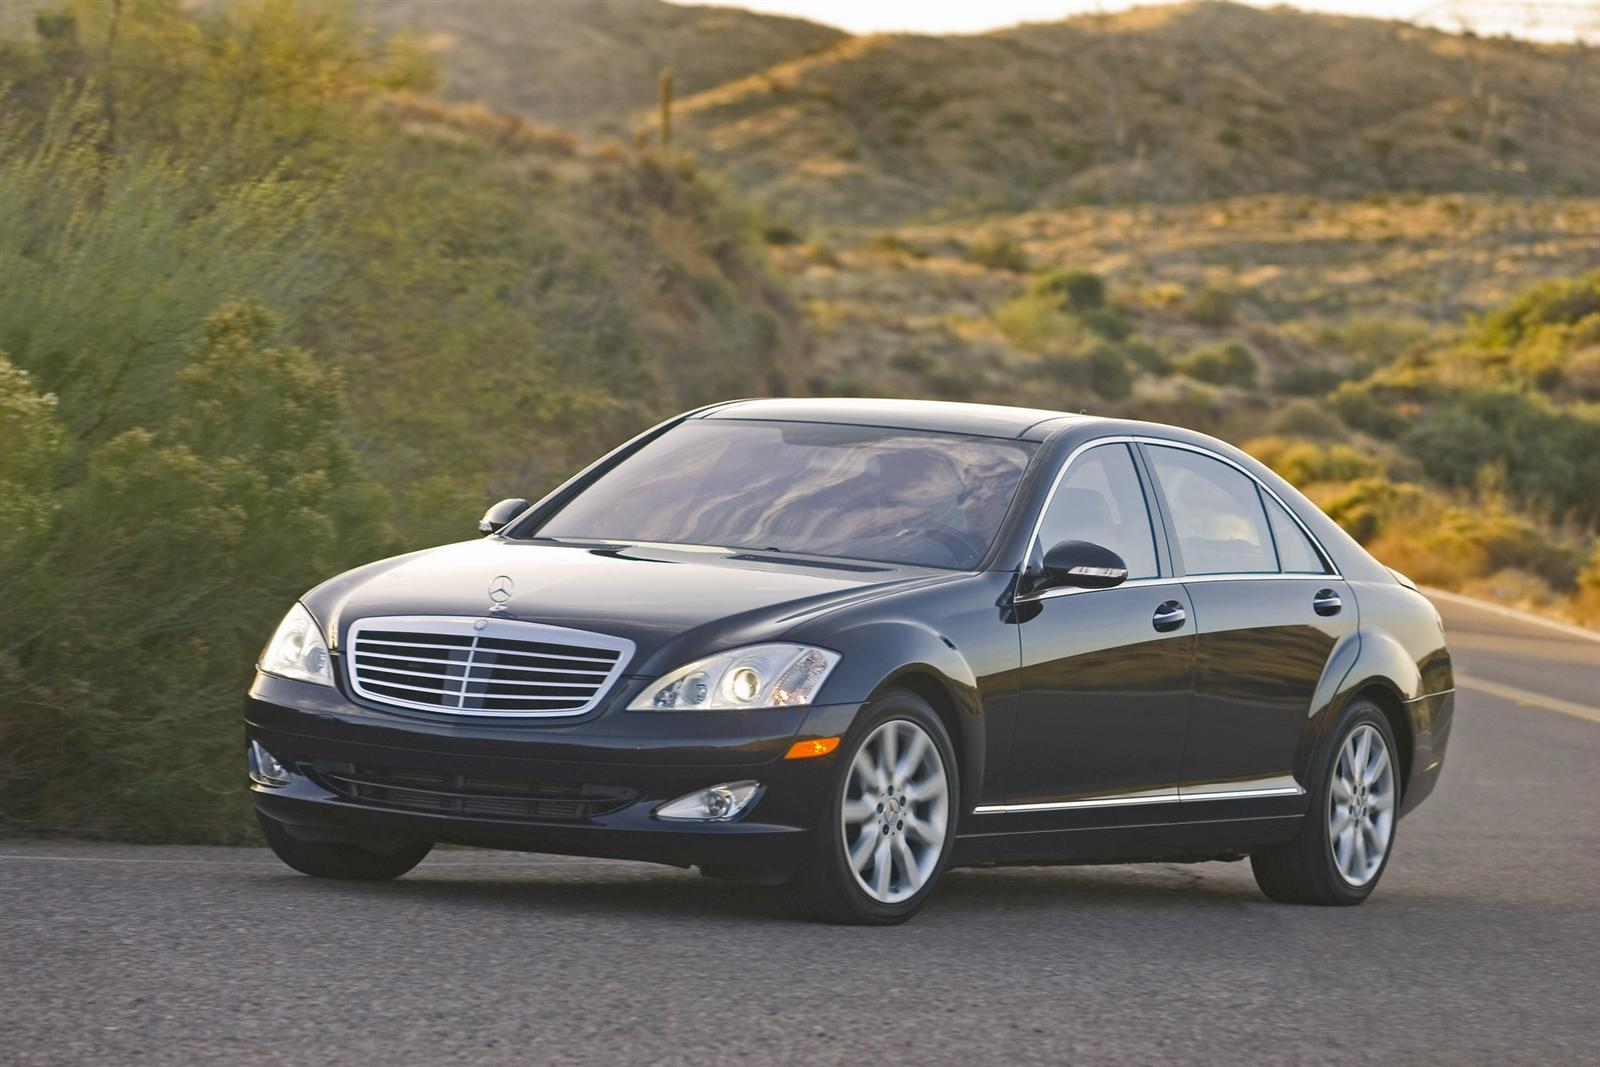 2008 mercedes benz s class image for Mercedes benz s500 2008